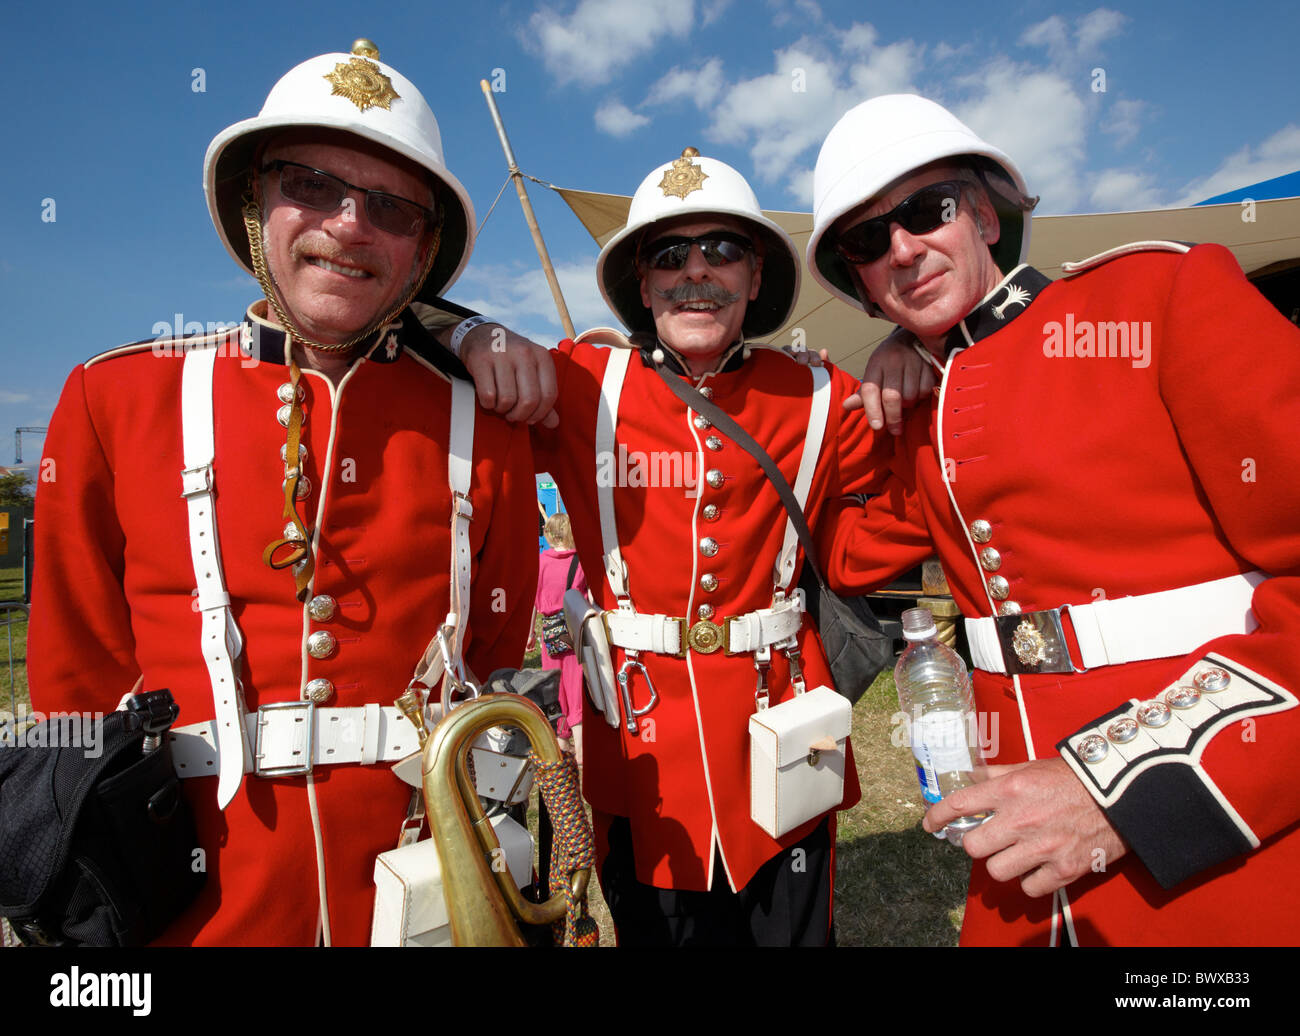 British Colonial Soldiers In Redcoats Glastonbury Festival Somerset UK Europe - Stock Image  sc 1 st  Alamy : british colonial soldier costume  - Germanpascual.Com